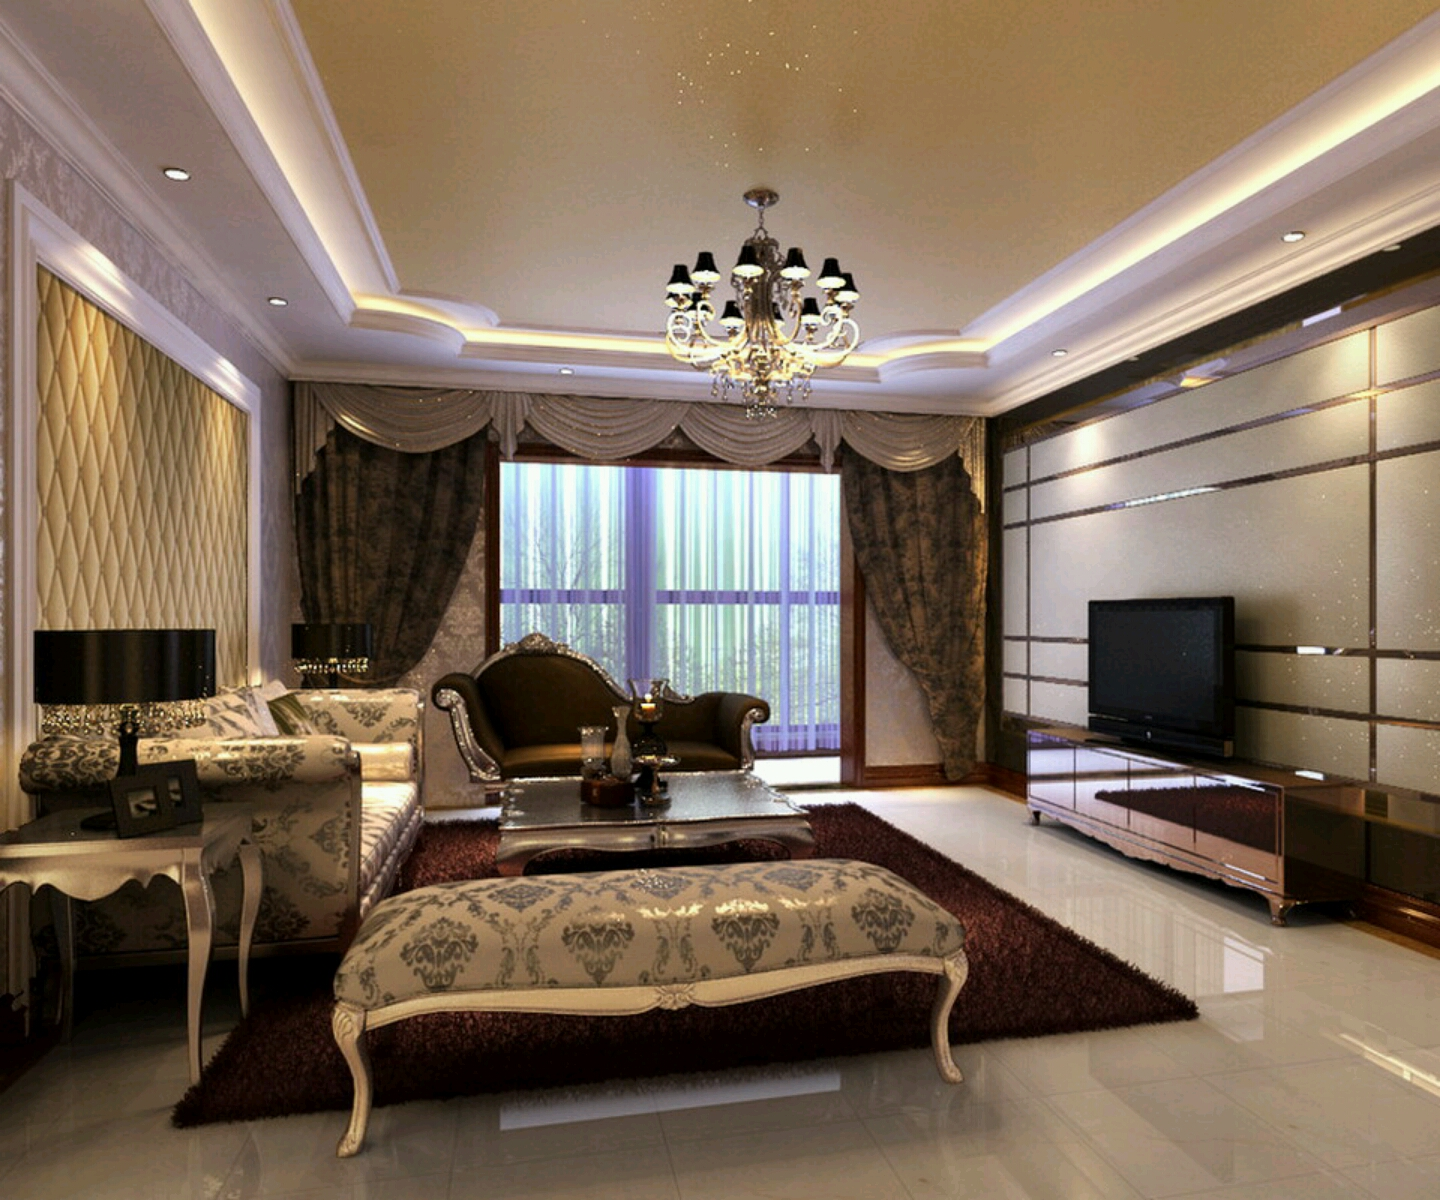 livingroom interior new home designs latest luxury homes interior decoration. beautiful ideas. Home Design Ideas